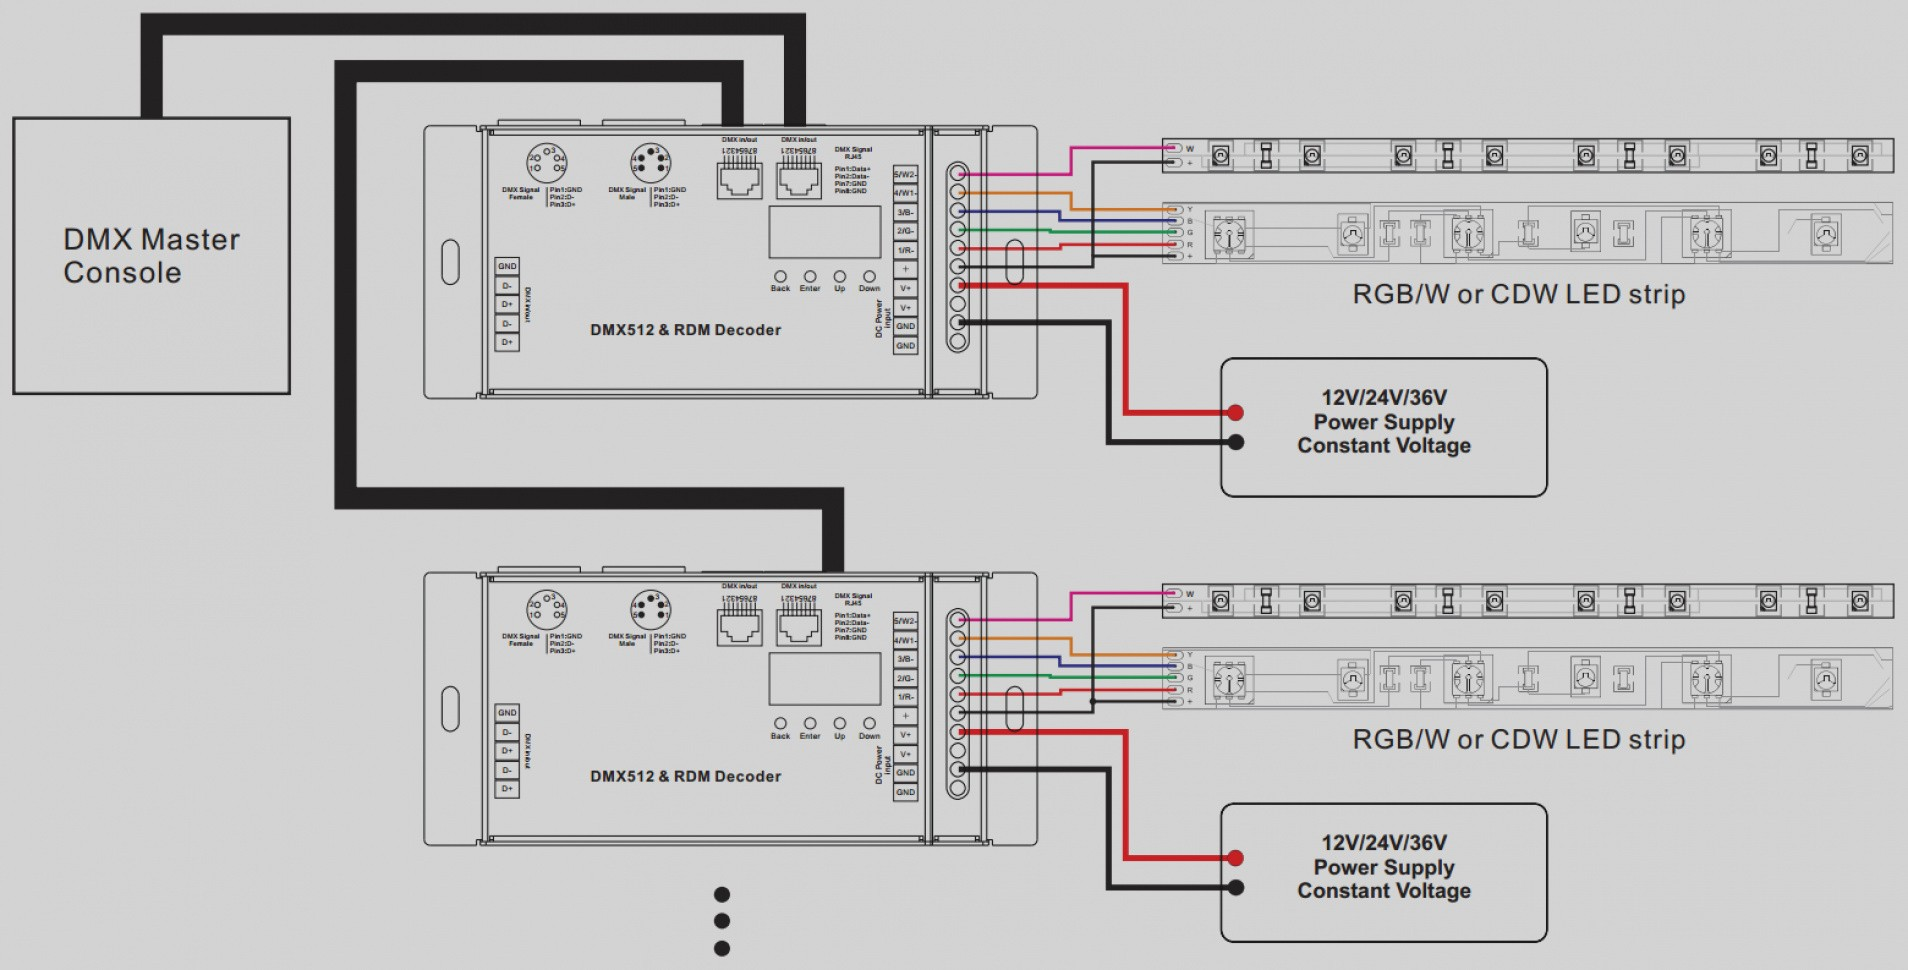 whelen strobe wiring diagram wiring diagrams termswhelen strobe light wiring diagram wiring diagram inside whelen strobe wiring diagram whelen strobe wiring diagram